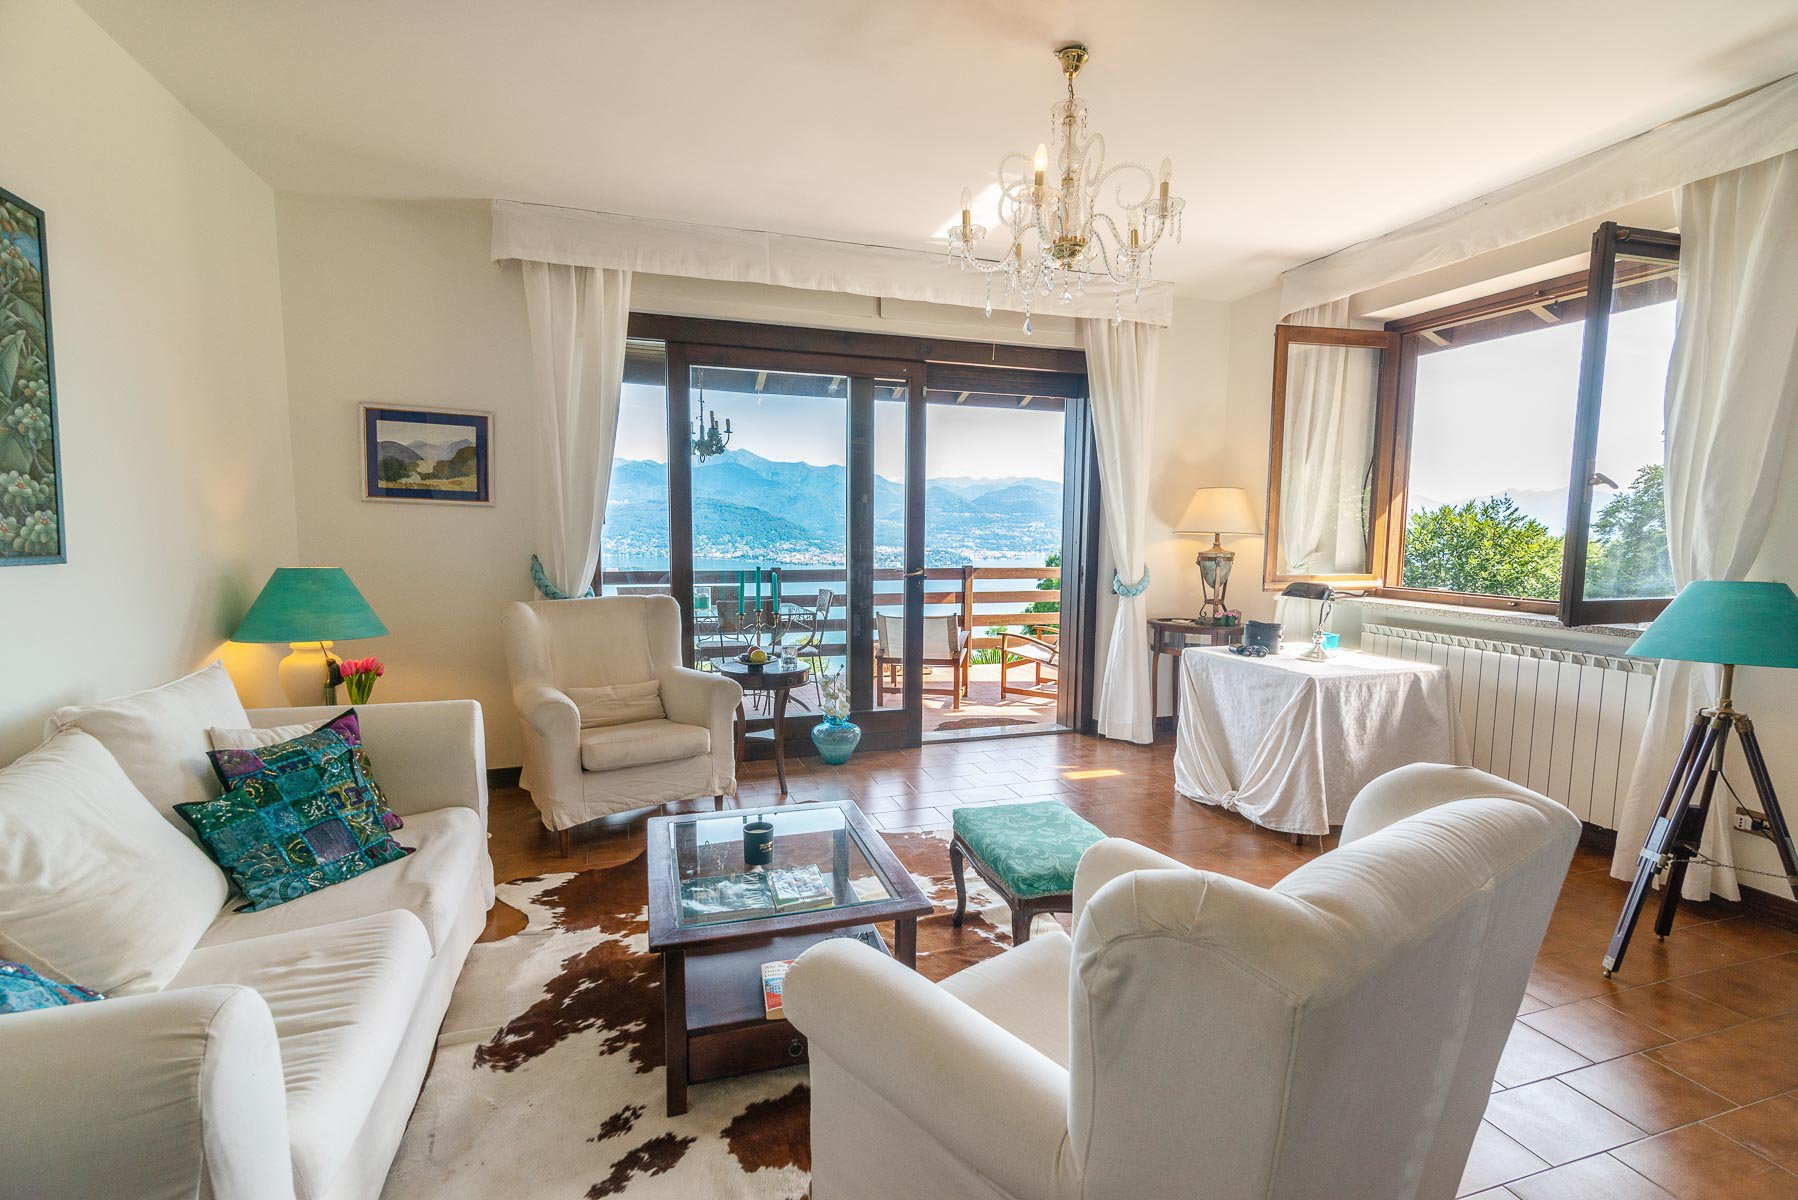 Villa for sale on the hill of Stresa with lake view- living room